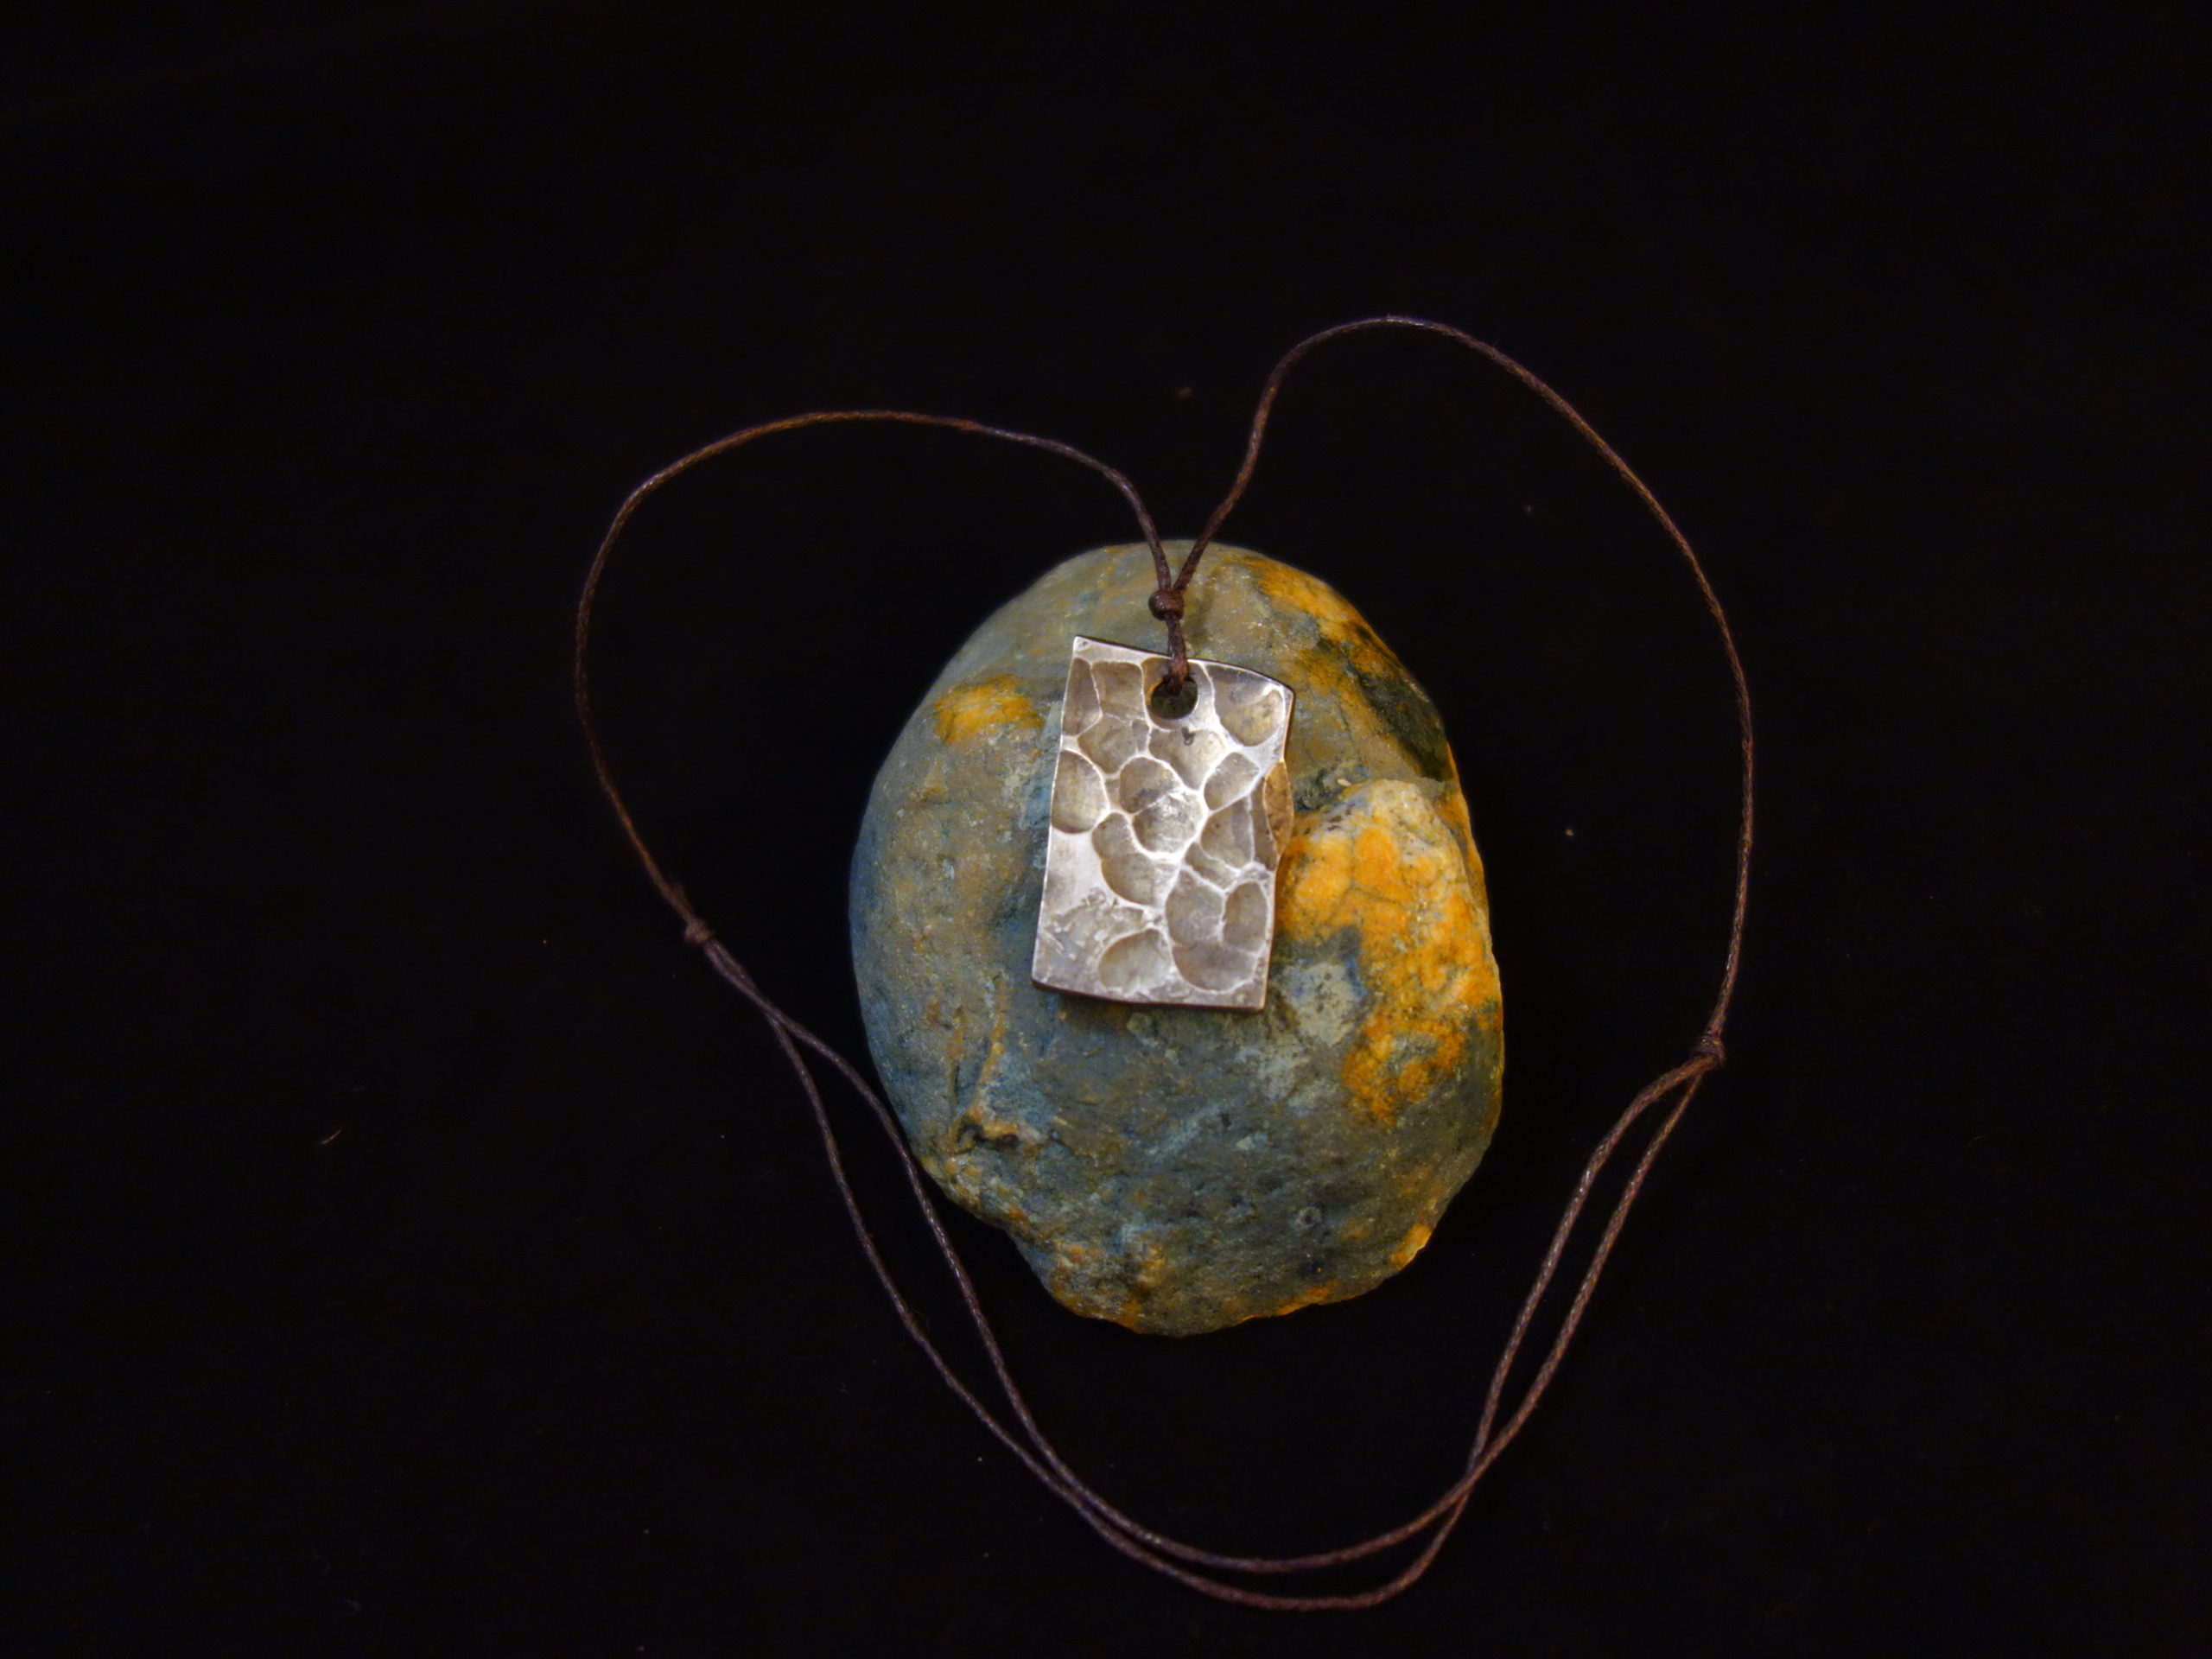 Rough hand forged stainless steel pendant moon surface #1